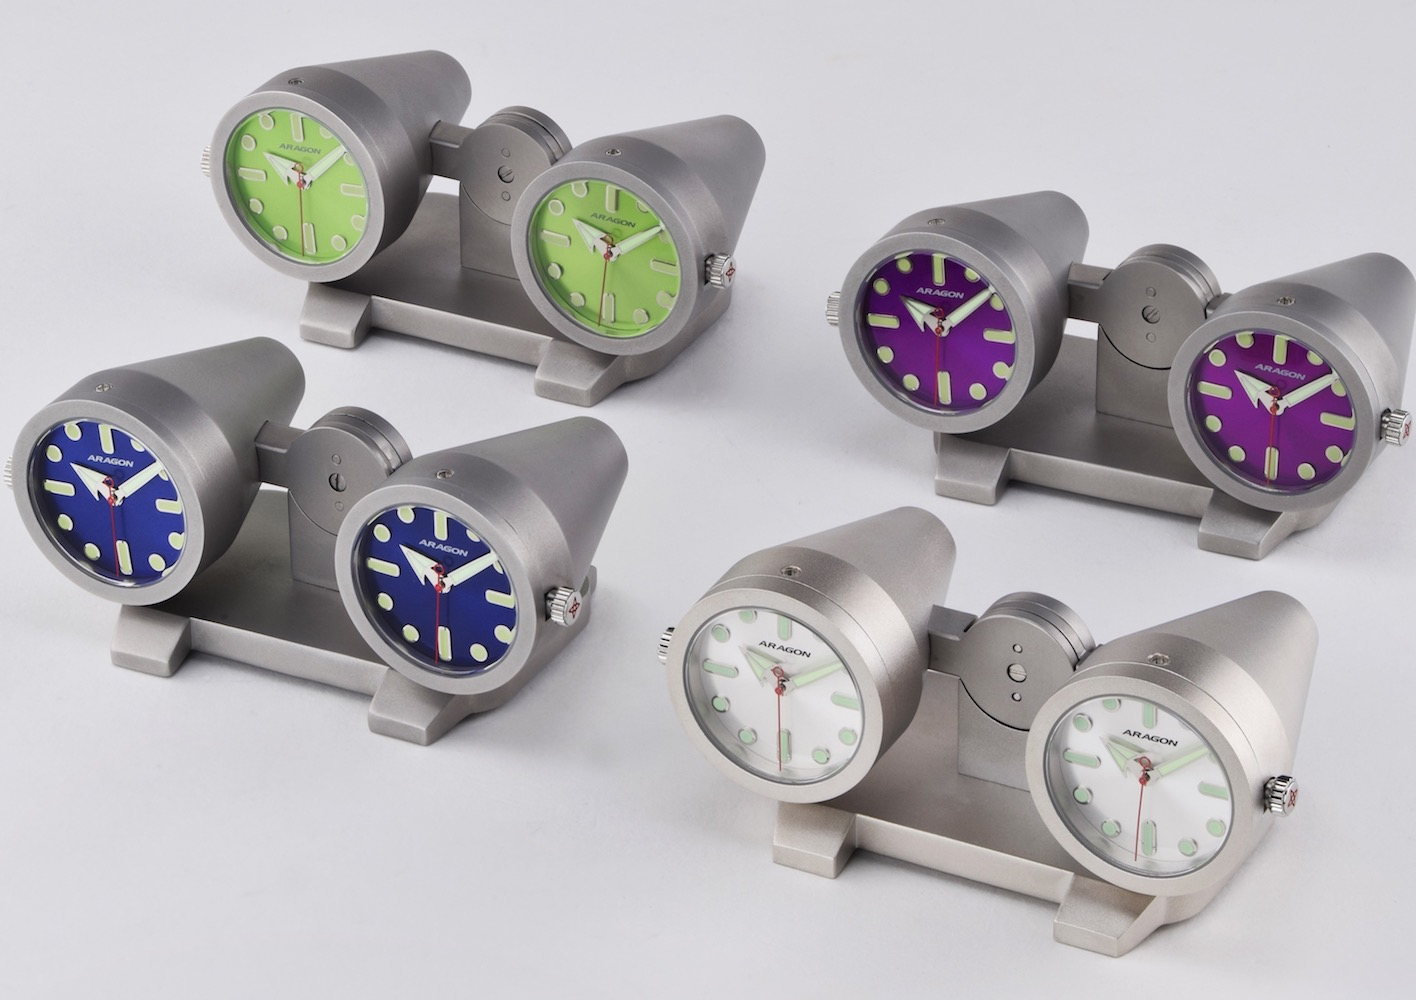 ARAGON Watch – Jet Clock Inspired by a Jet Engine